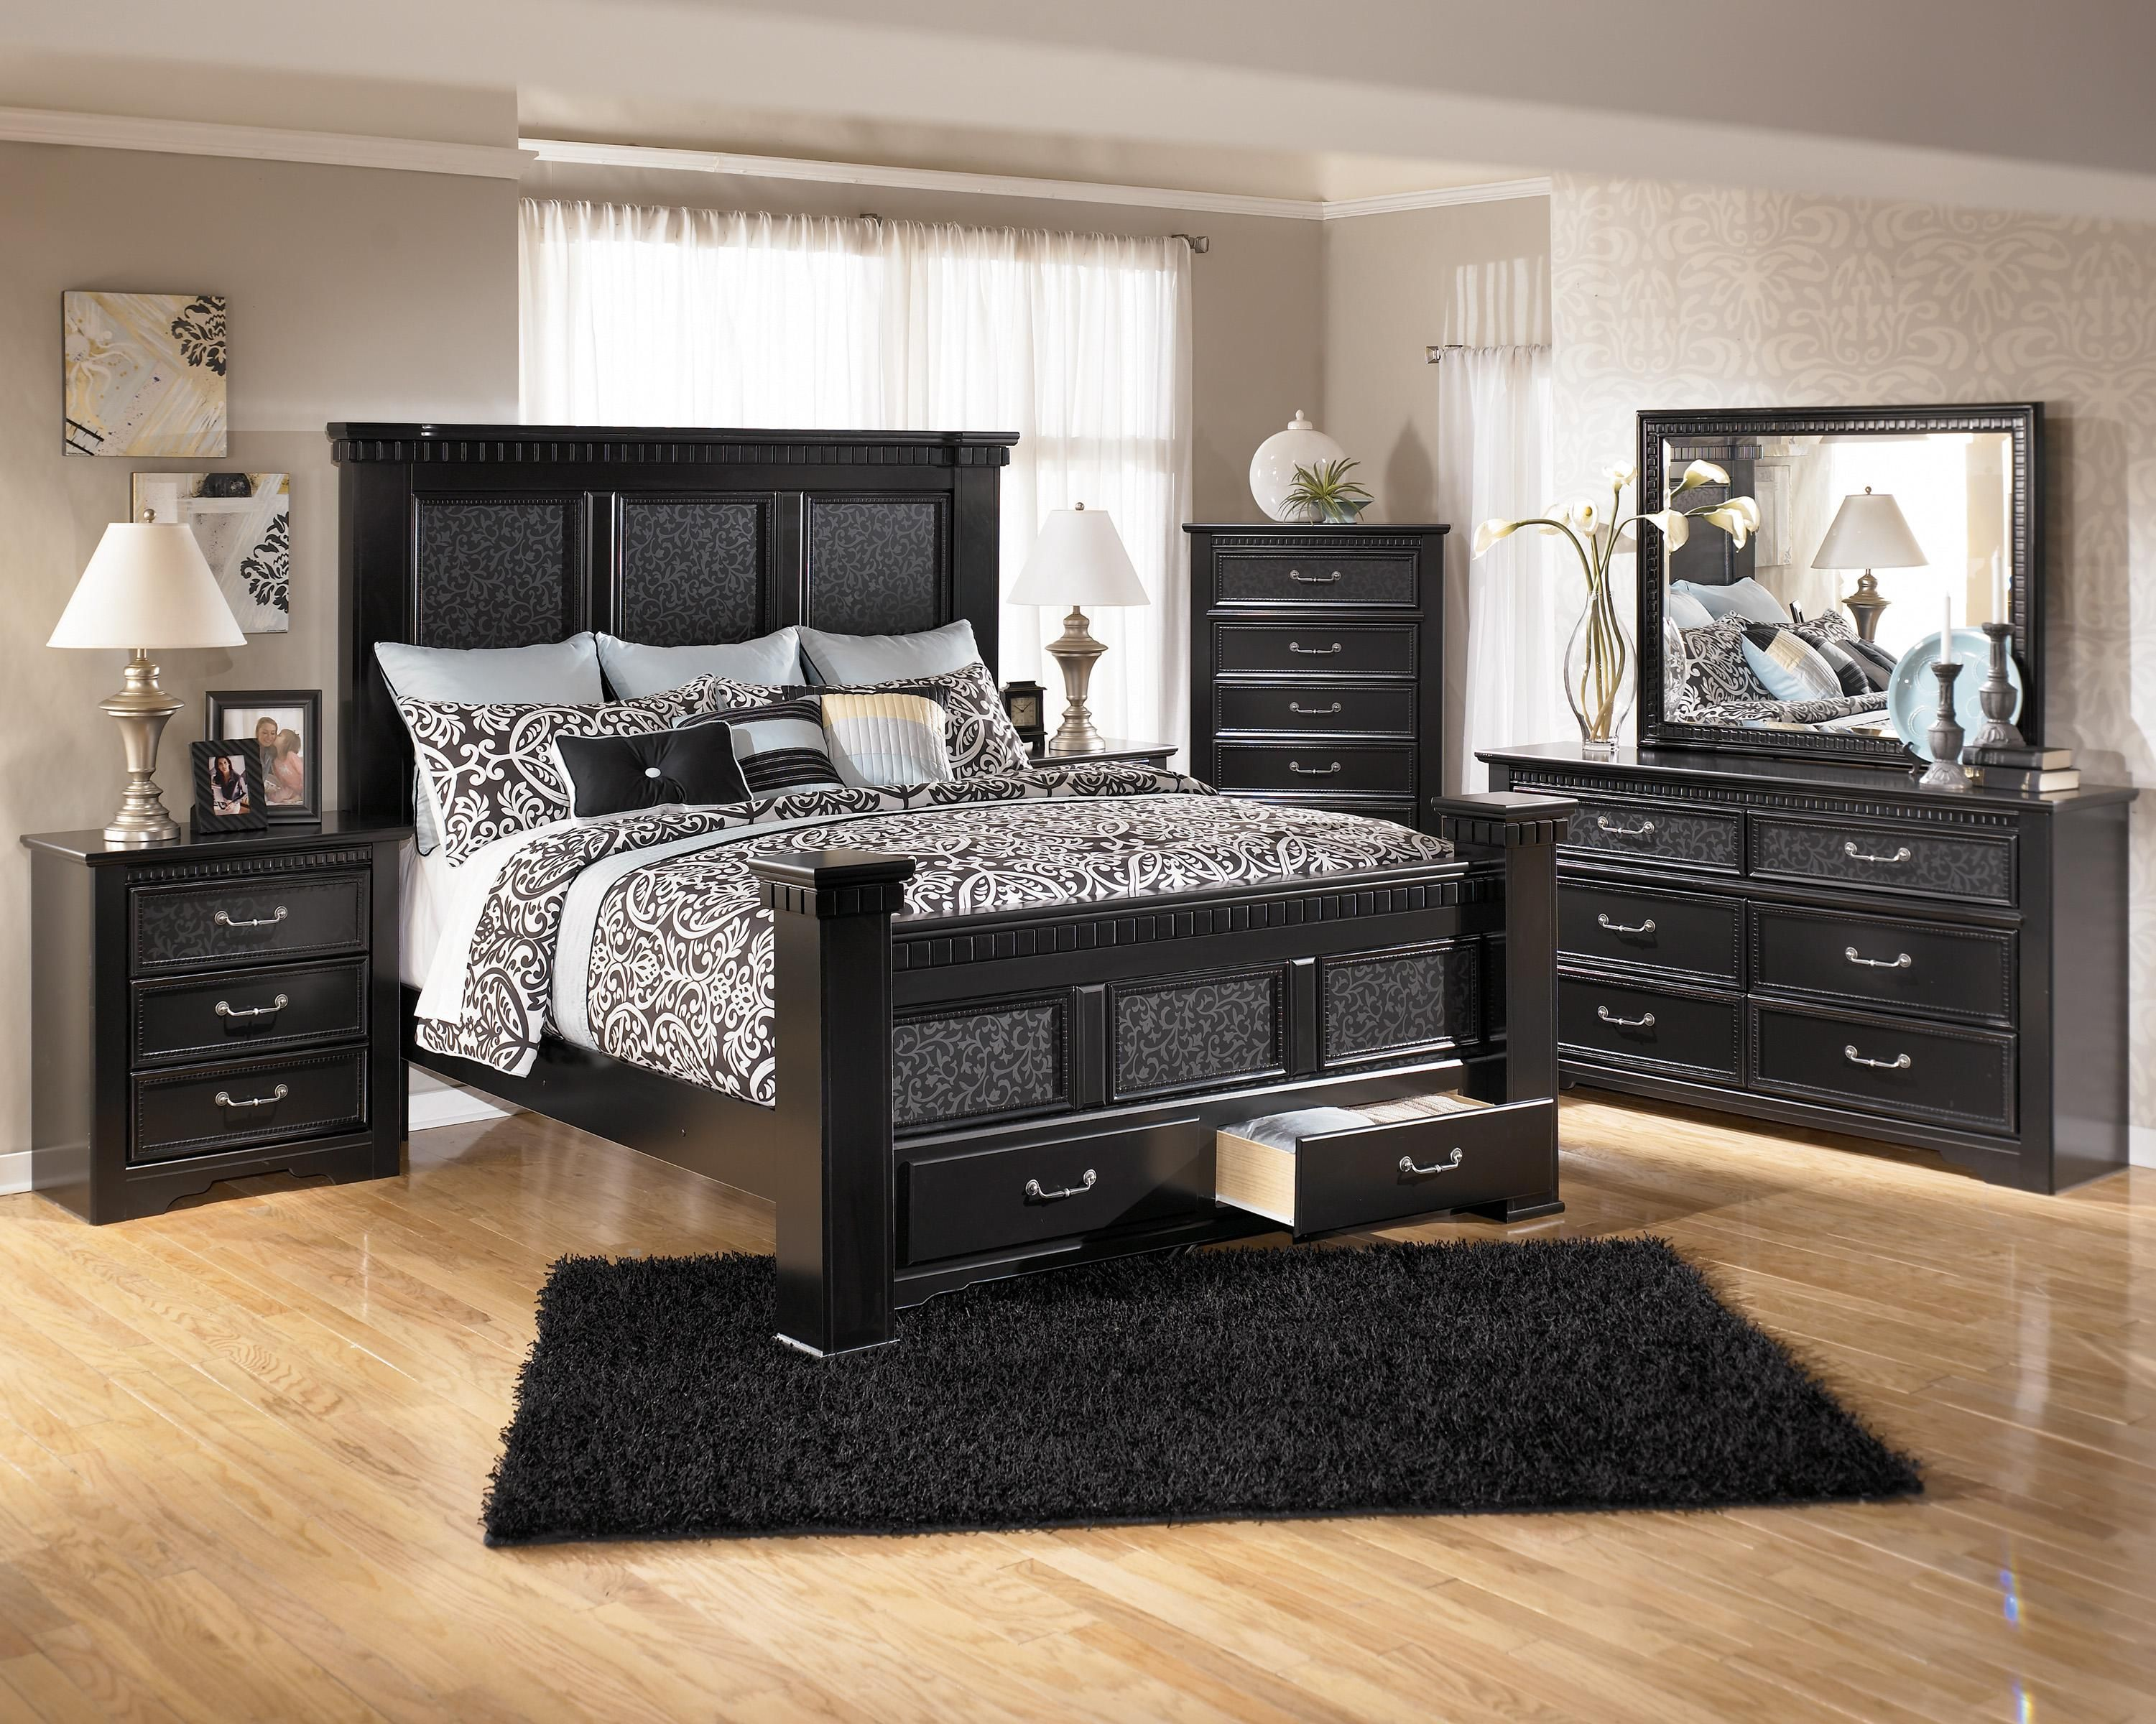 Bedroom furniture storage - Ashley Furniture Cavallino Bedroom Set With Mansion Poster Bed Storage Footboard Bed Only 799 95